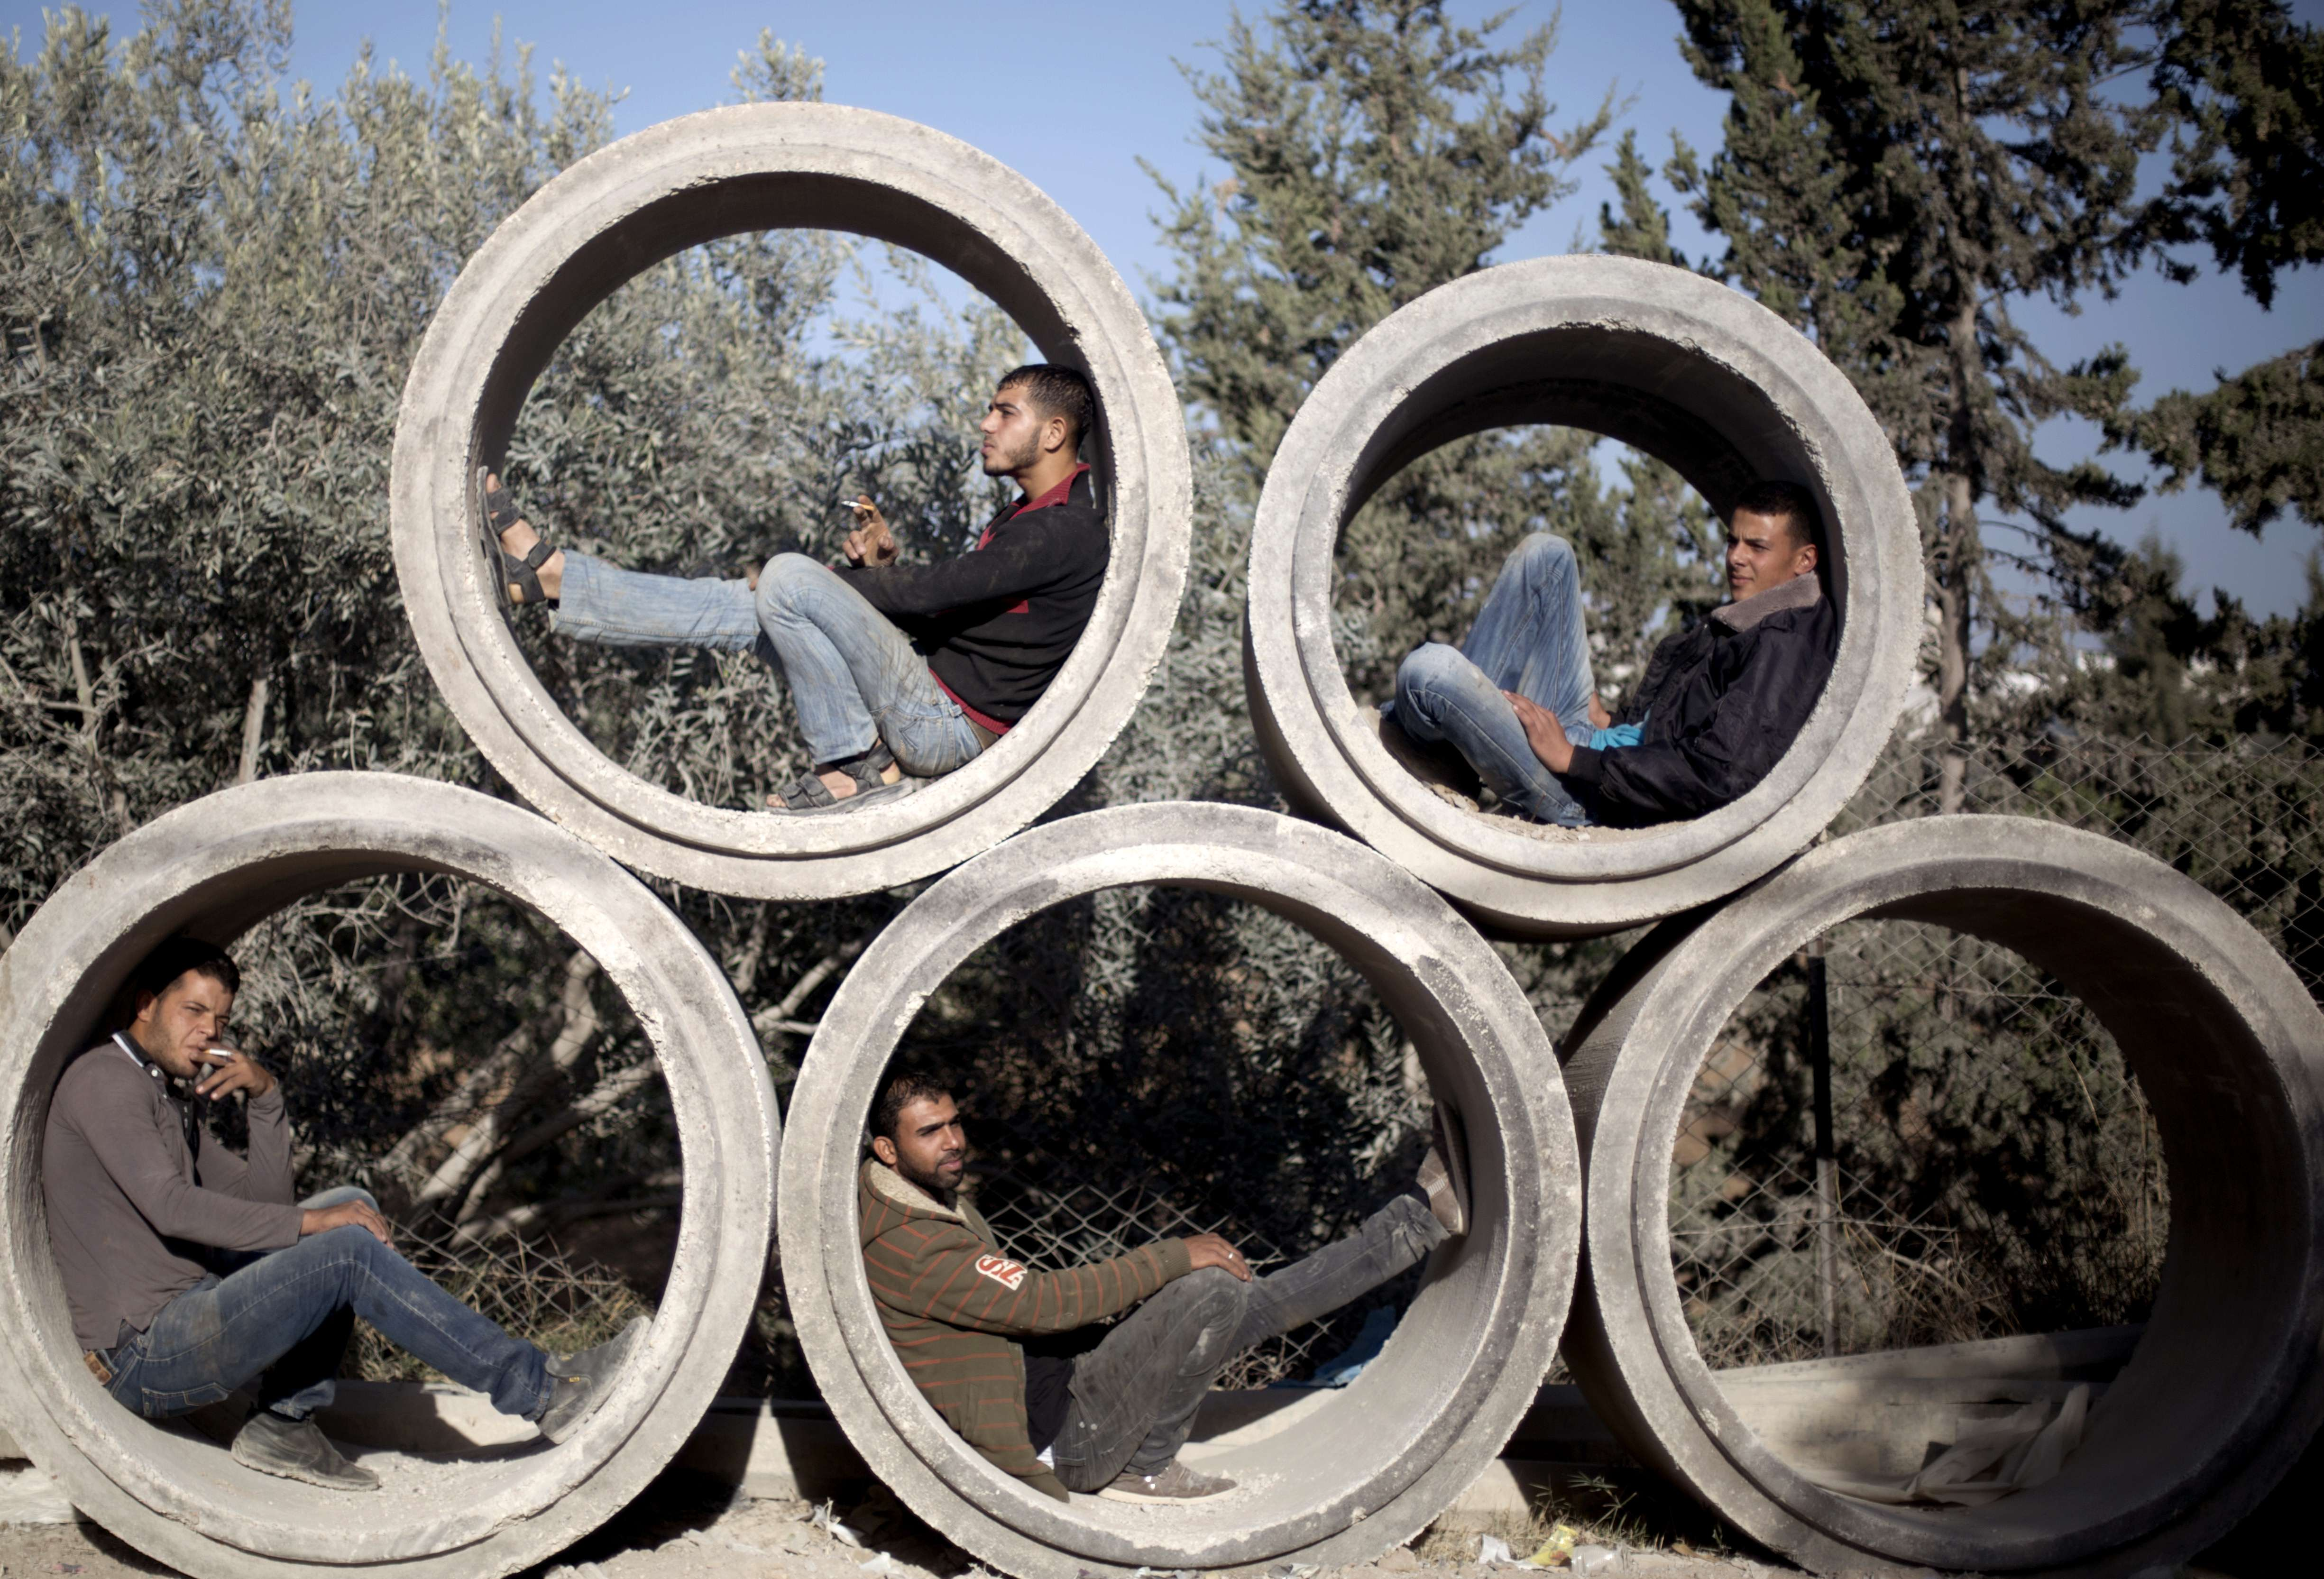 Palestinian factory workers rest inside ...Palestinian factory workers rest inside concrete pipes as they wait for the start of a working day in Gaza City on October 23, 2013. AFP PHOTO/MOHAMMED ABEDMOHAMMED ABED/AFP/Getty Images